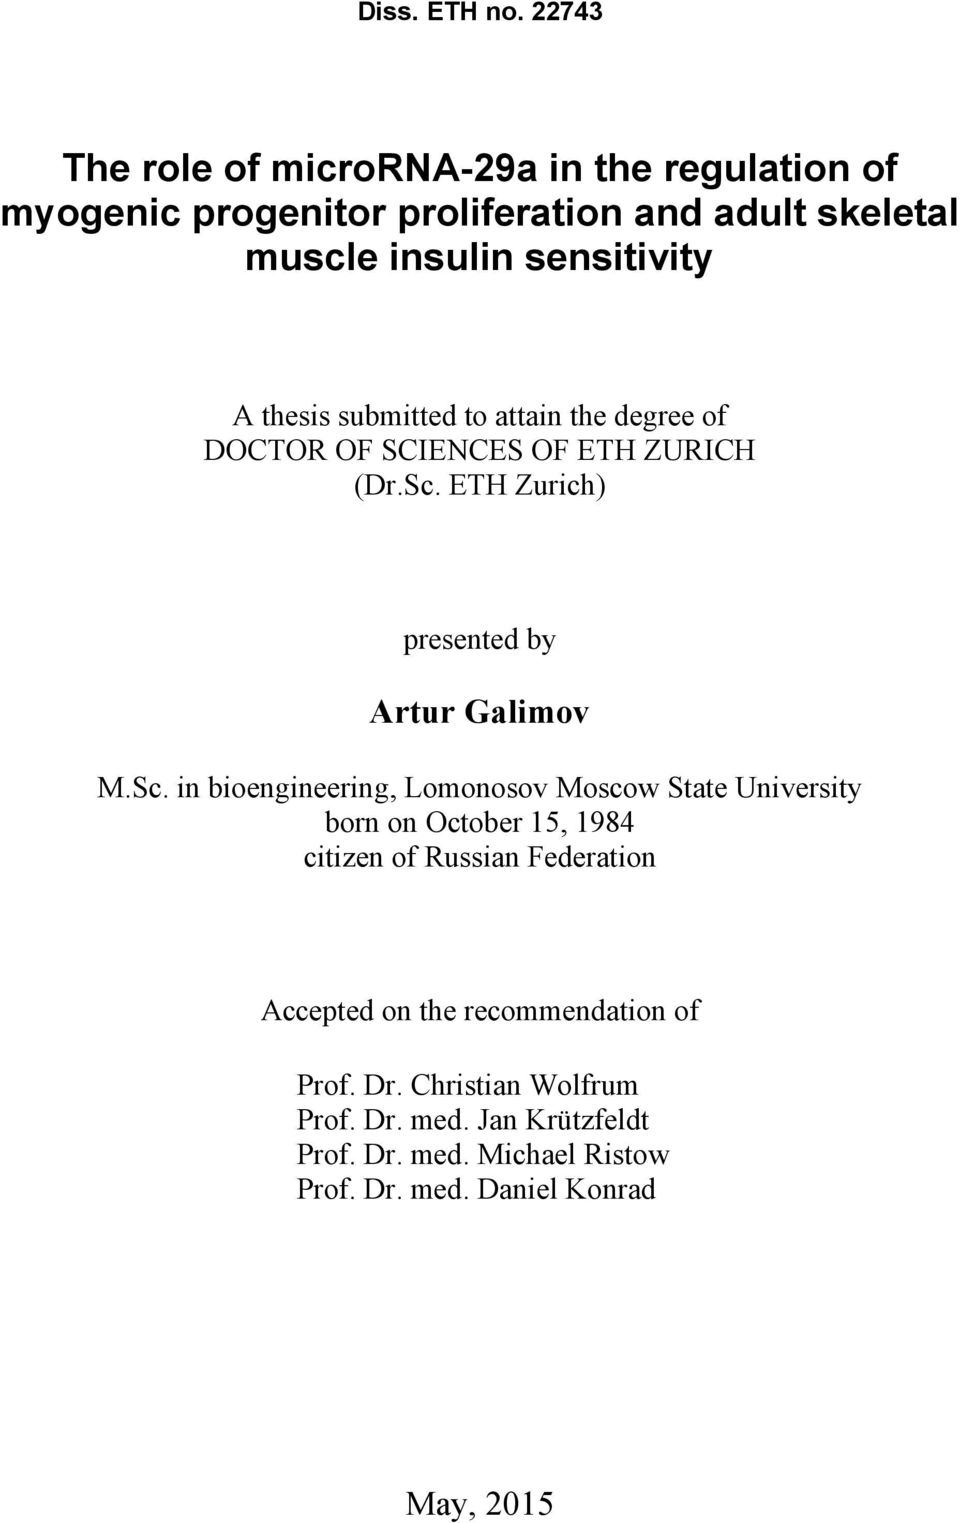 thesis submitted to attain the degree of DOCTOR OF SCIENCES OF ETH ZURICH (Dr.Sc.